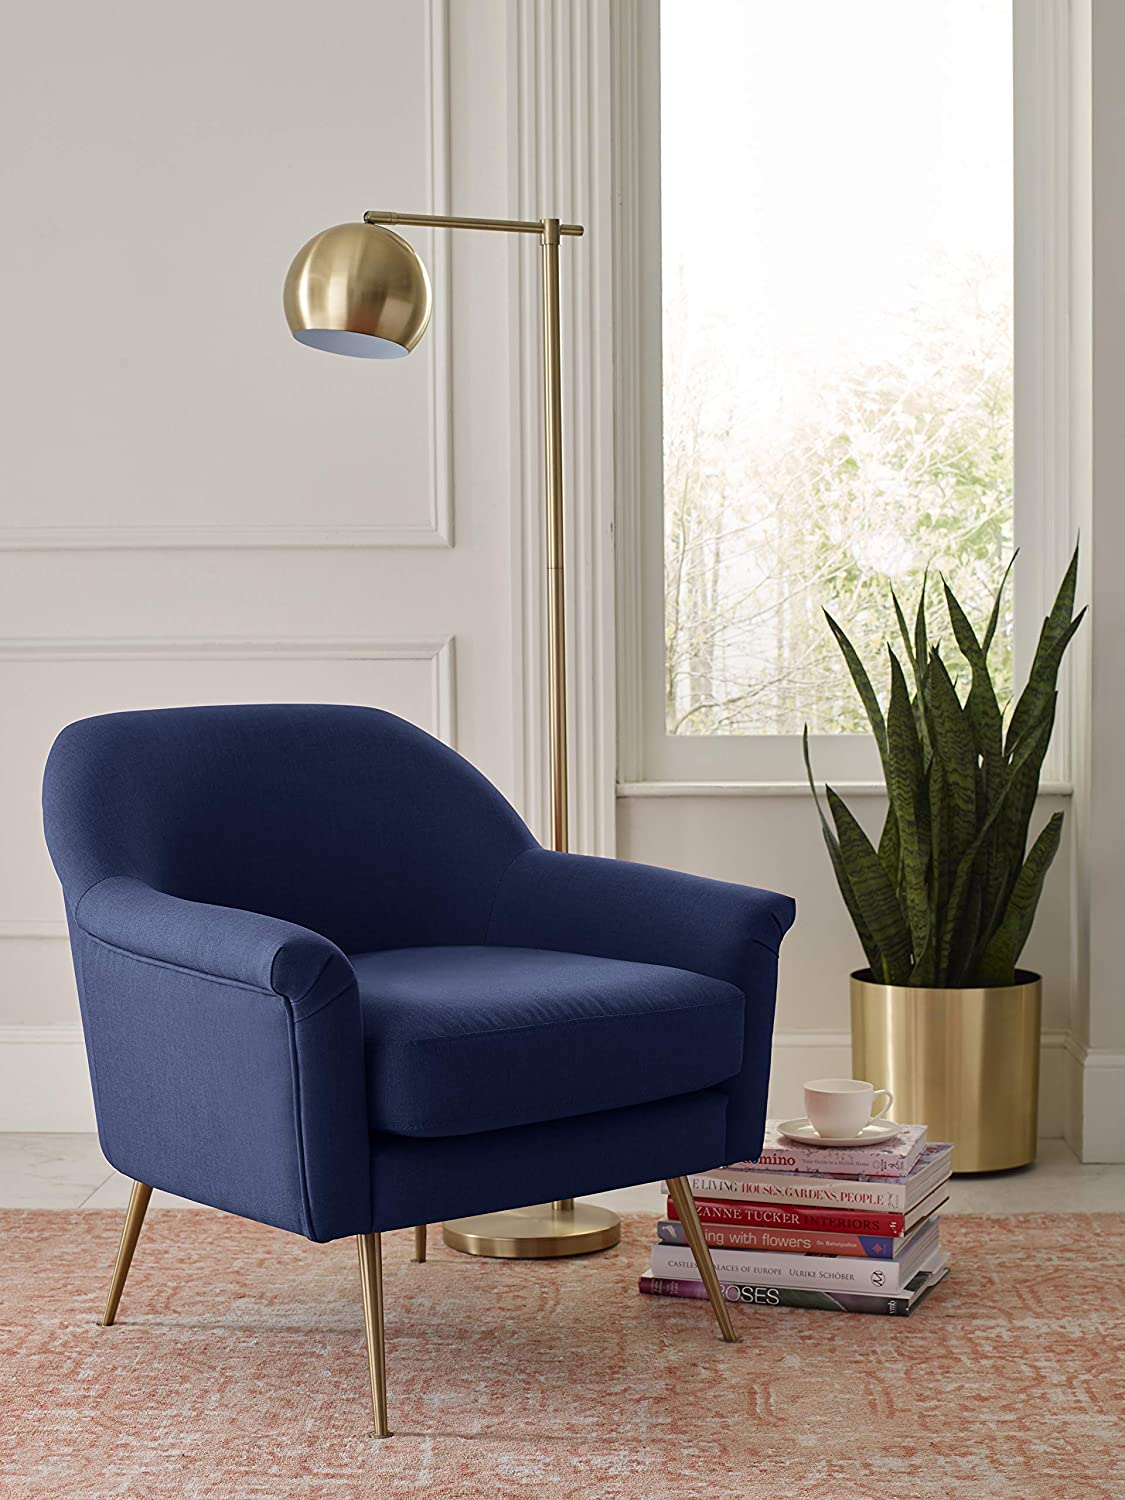 Elle Decor UPH10060B Ophelia Accent Chair Navy